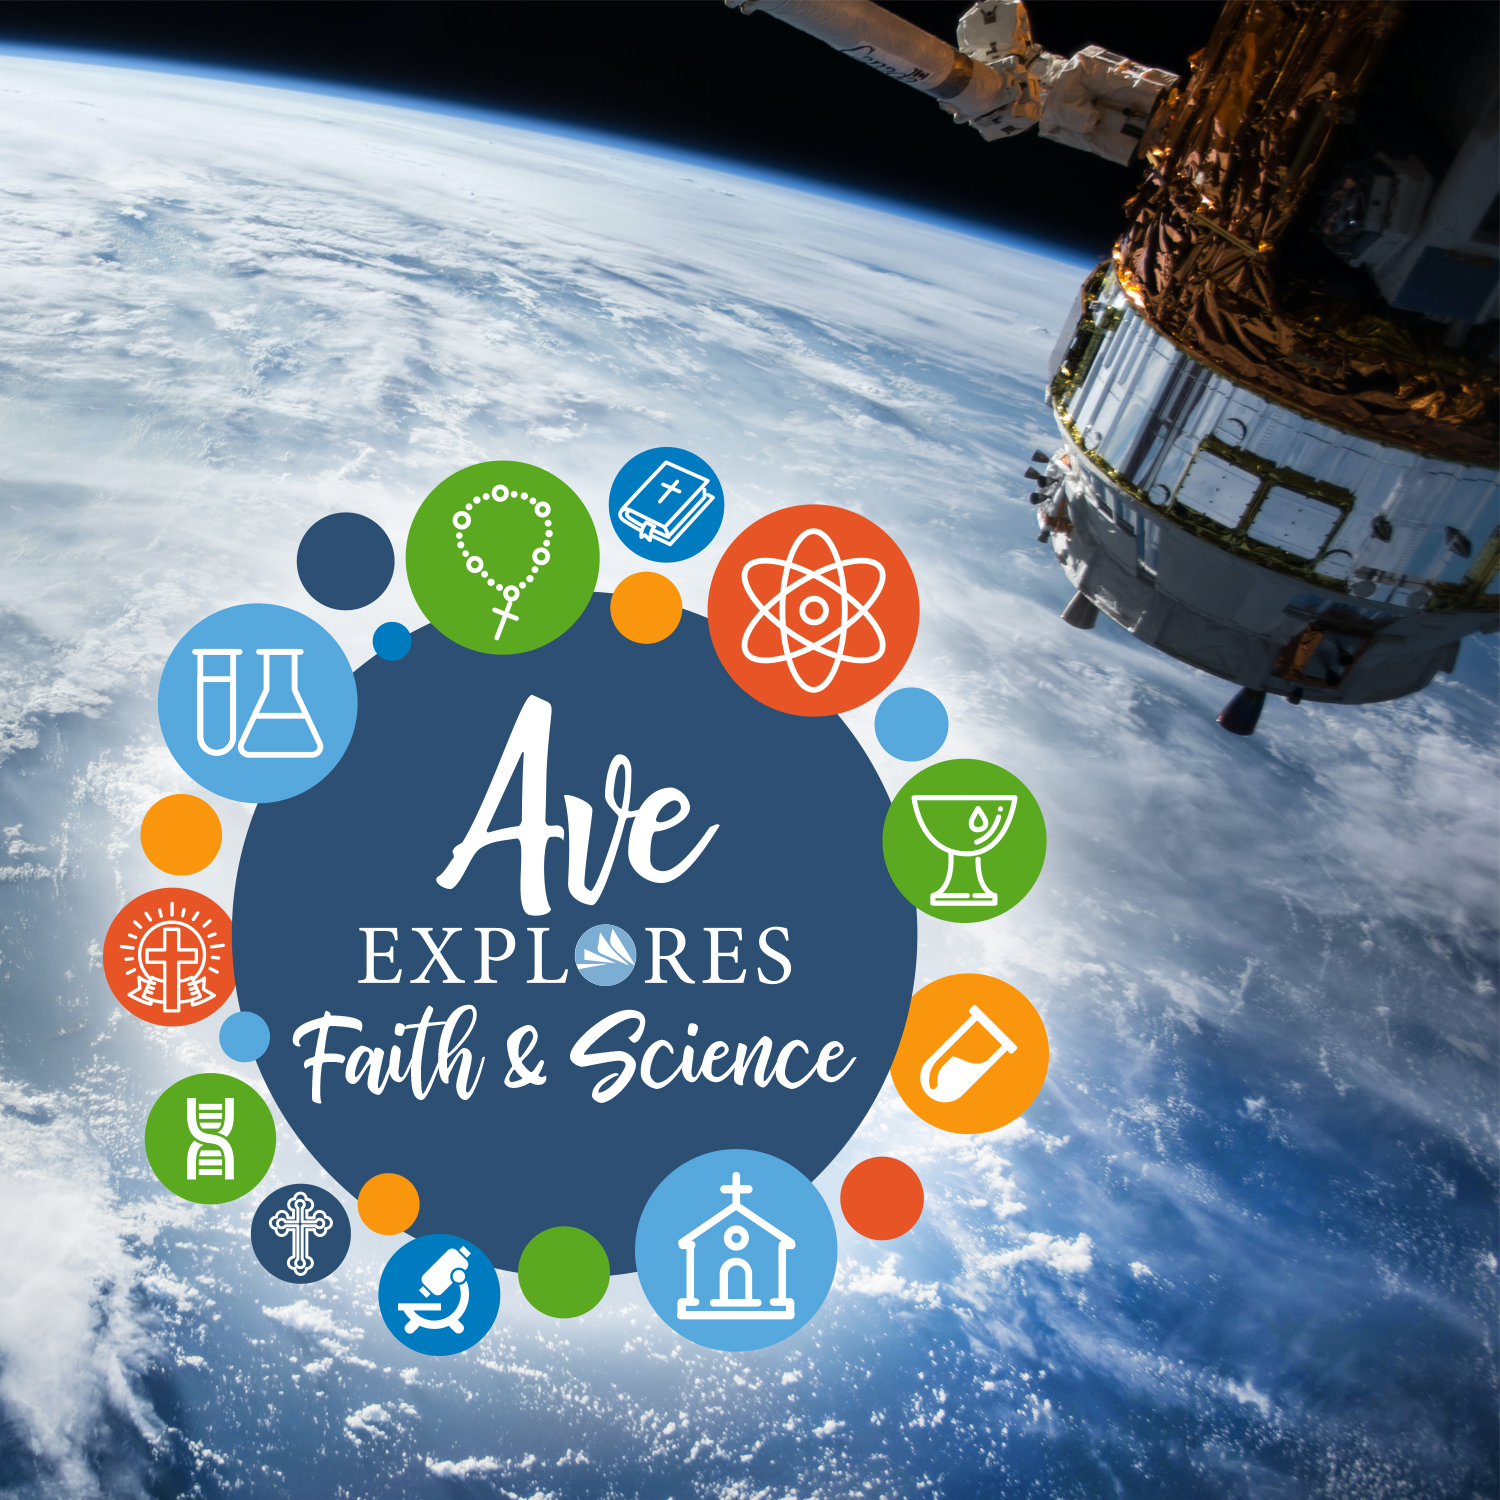 Ave Explores Faith and Science logo with space photo